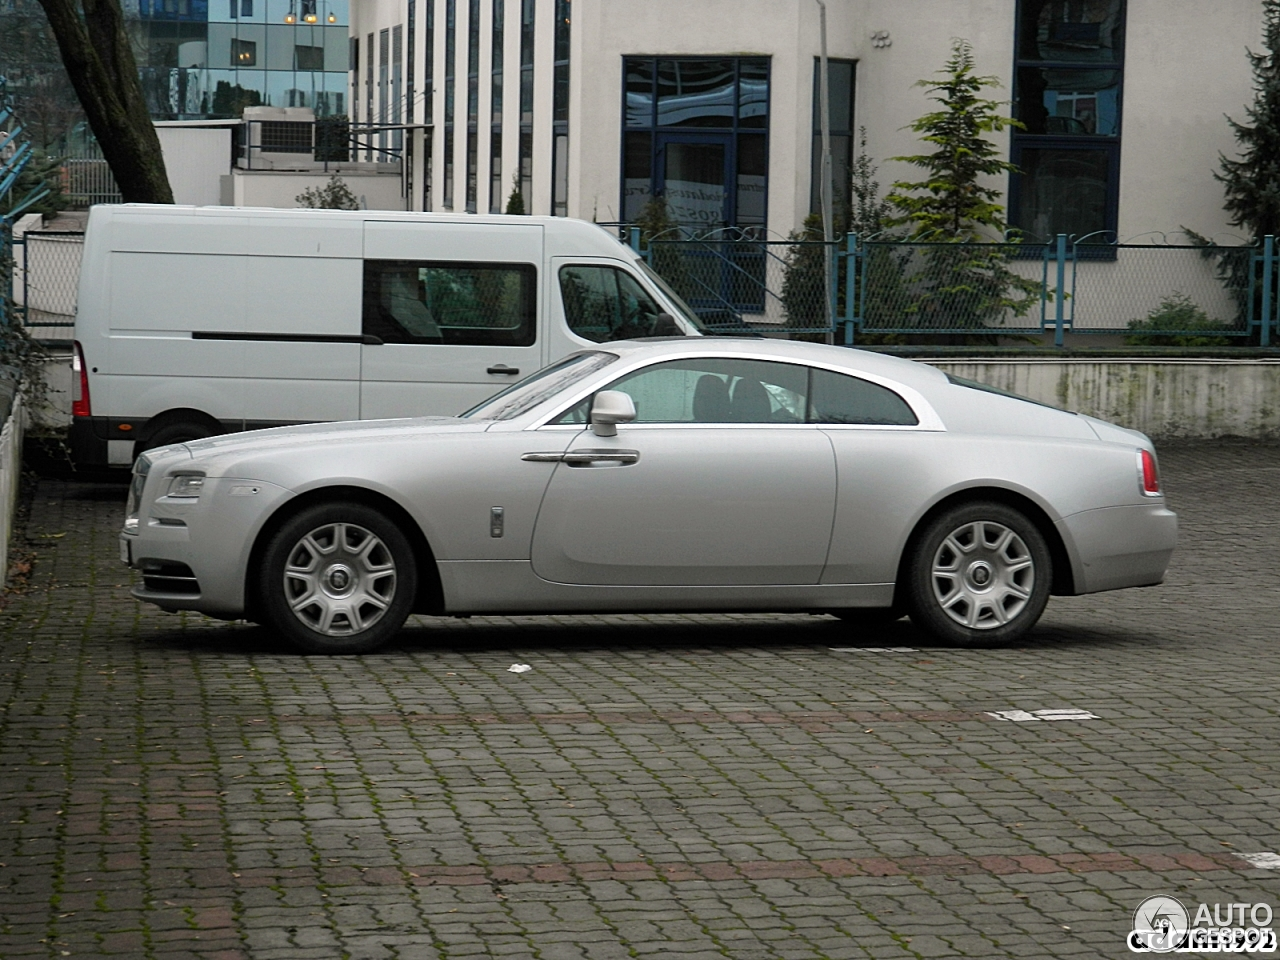 Rolls royce 20 photo - 9